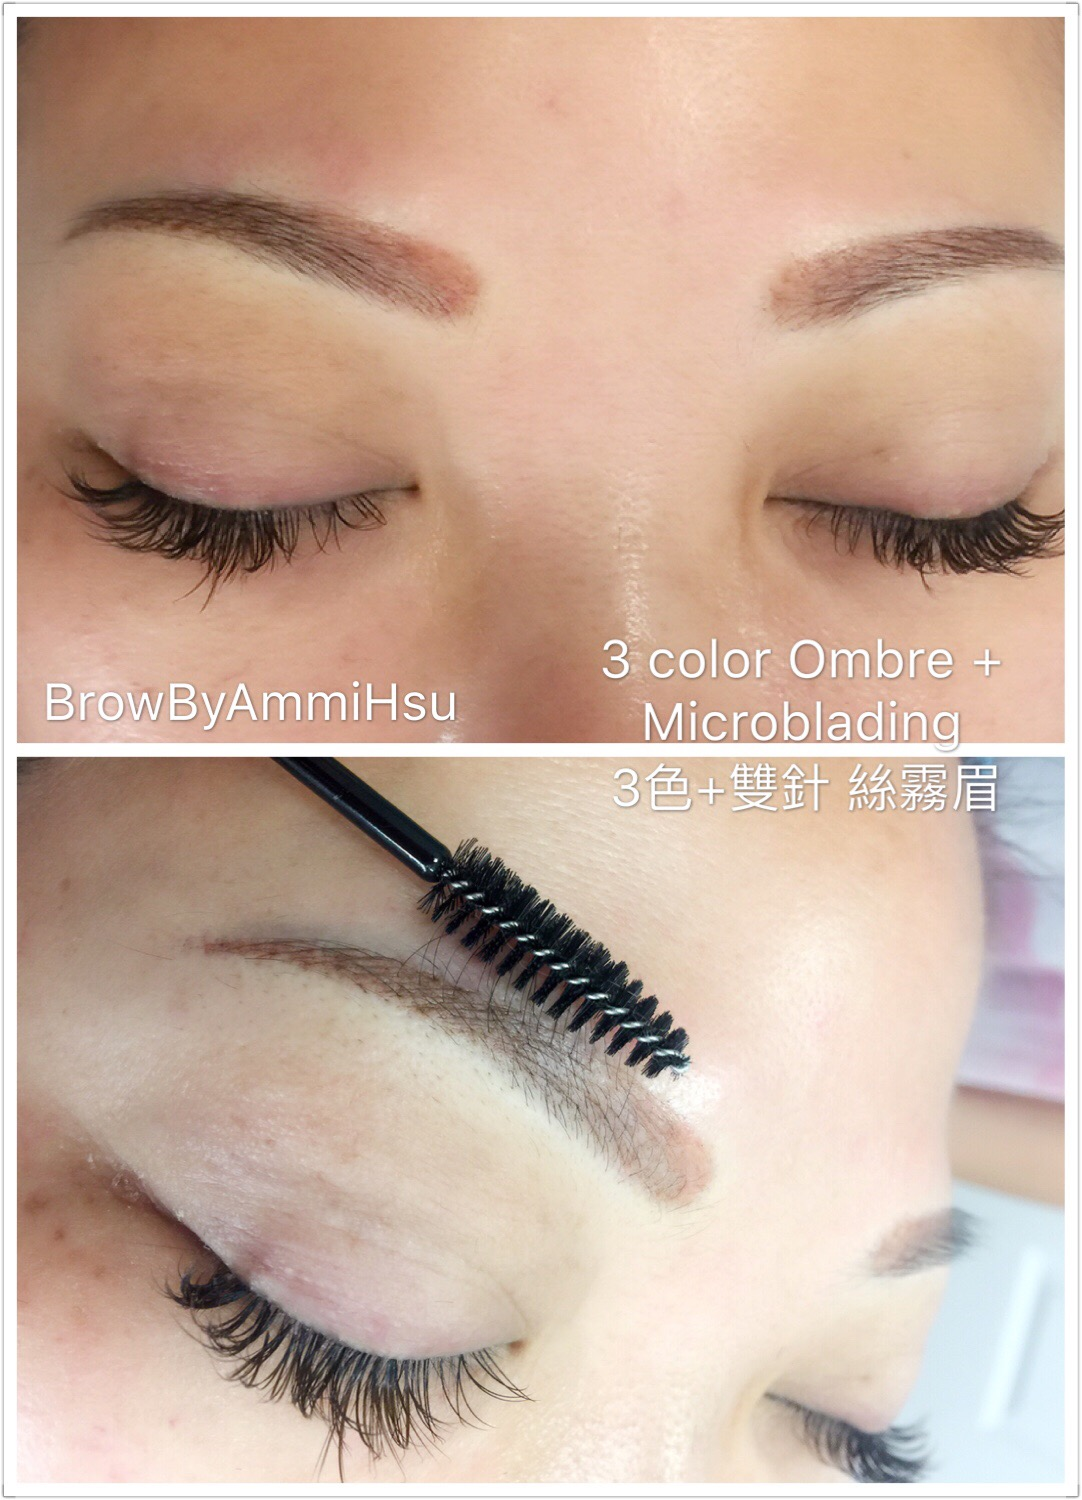 Shadow + 3D microblading